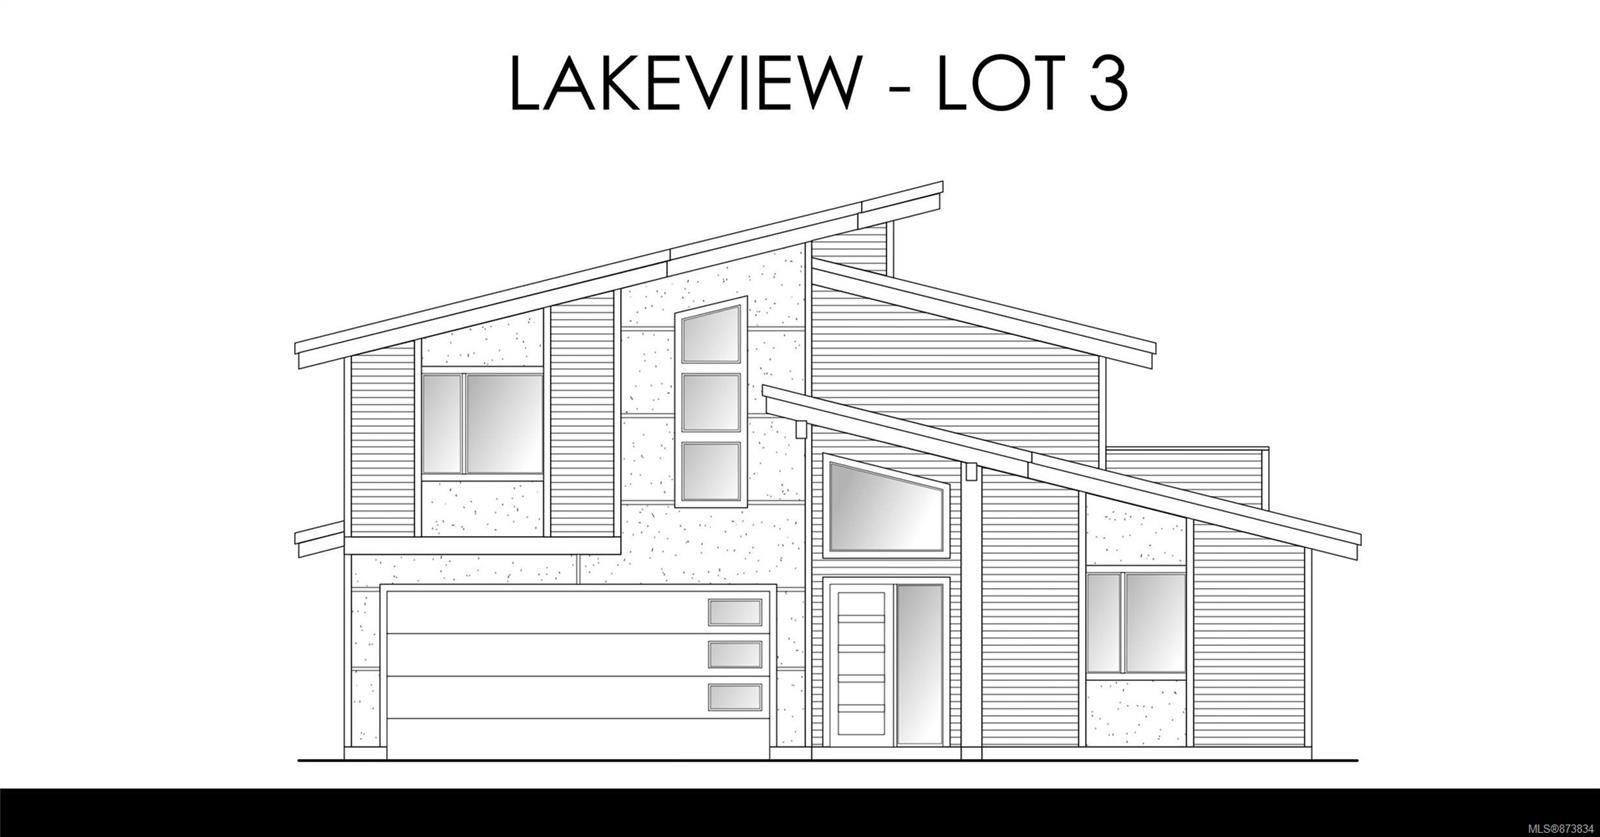 Main Photo: 975 Lakeview Ave in : SE High Quadra Land for sale (Saanich East)  : MLS®# 873834